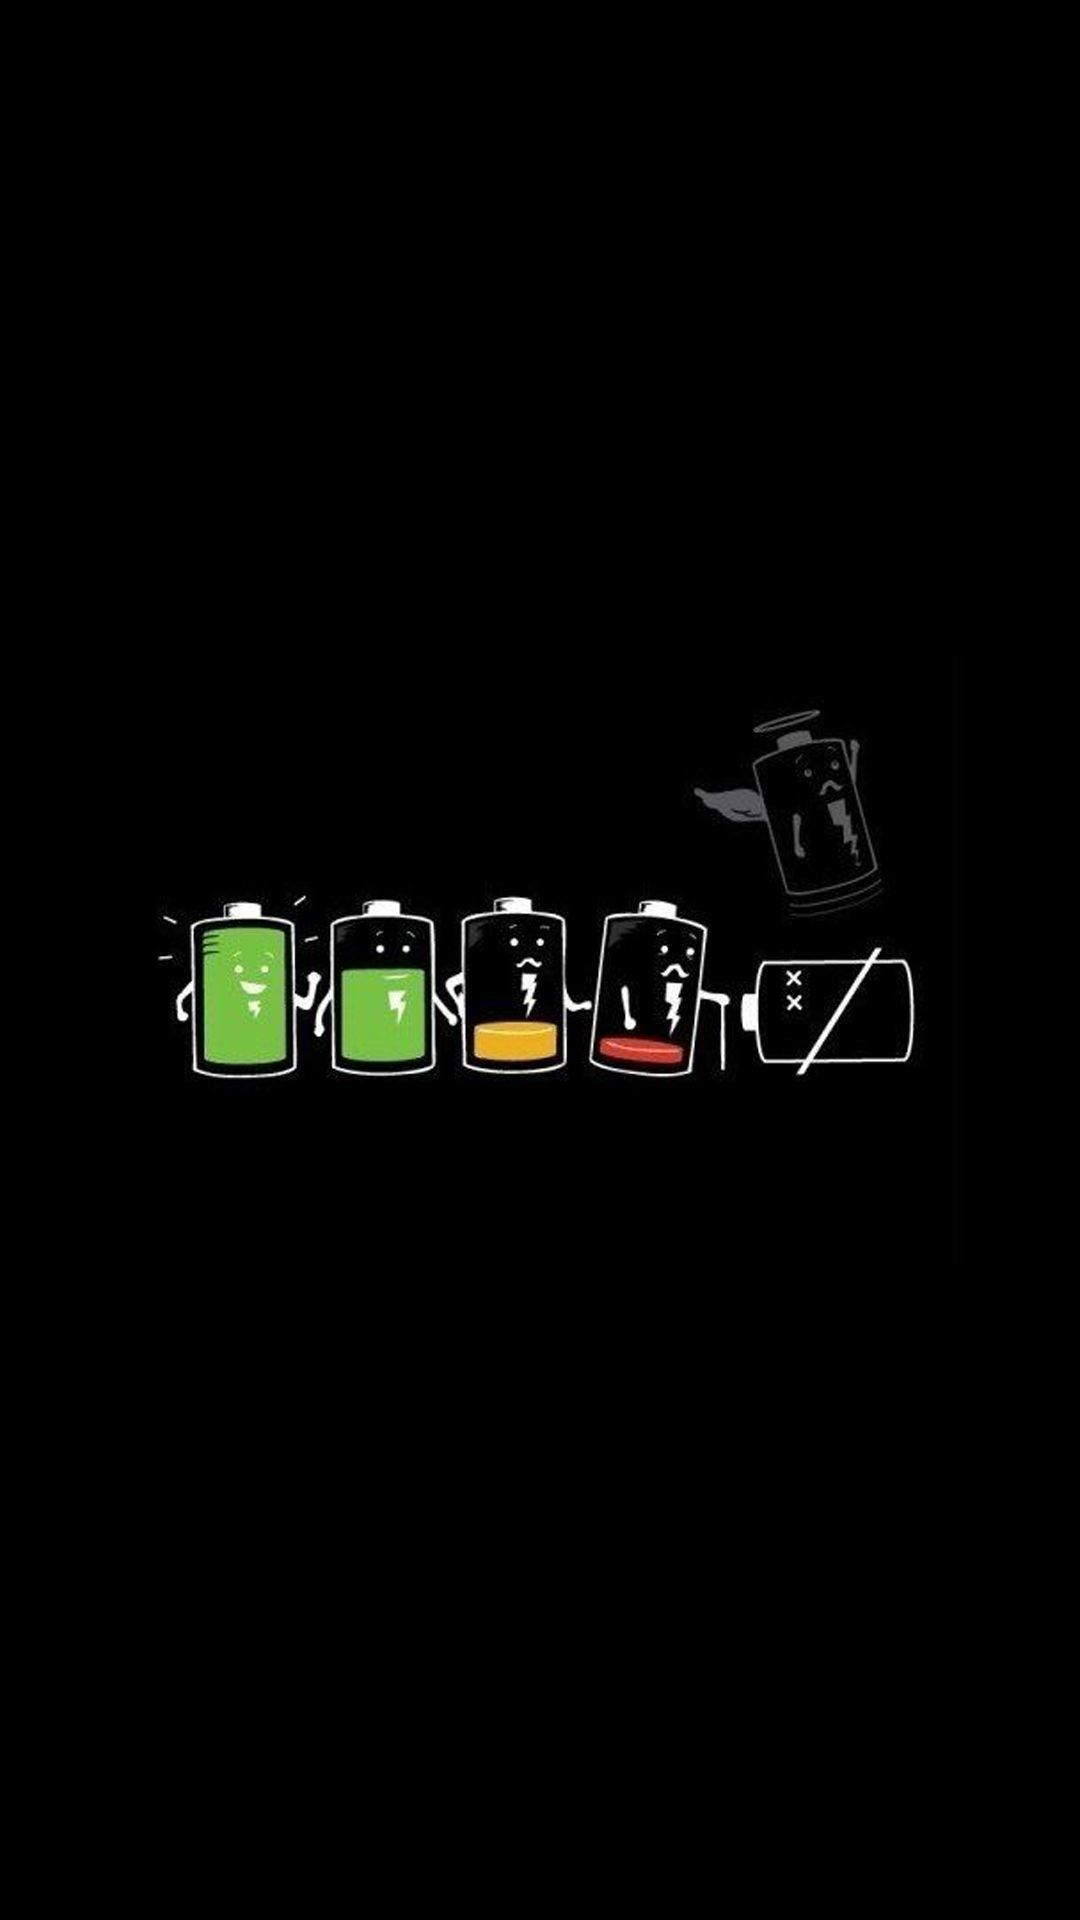 84 Funny Iphone Wallpapers On Wallpaperplay Regarding The Most